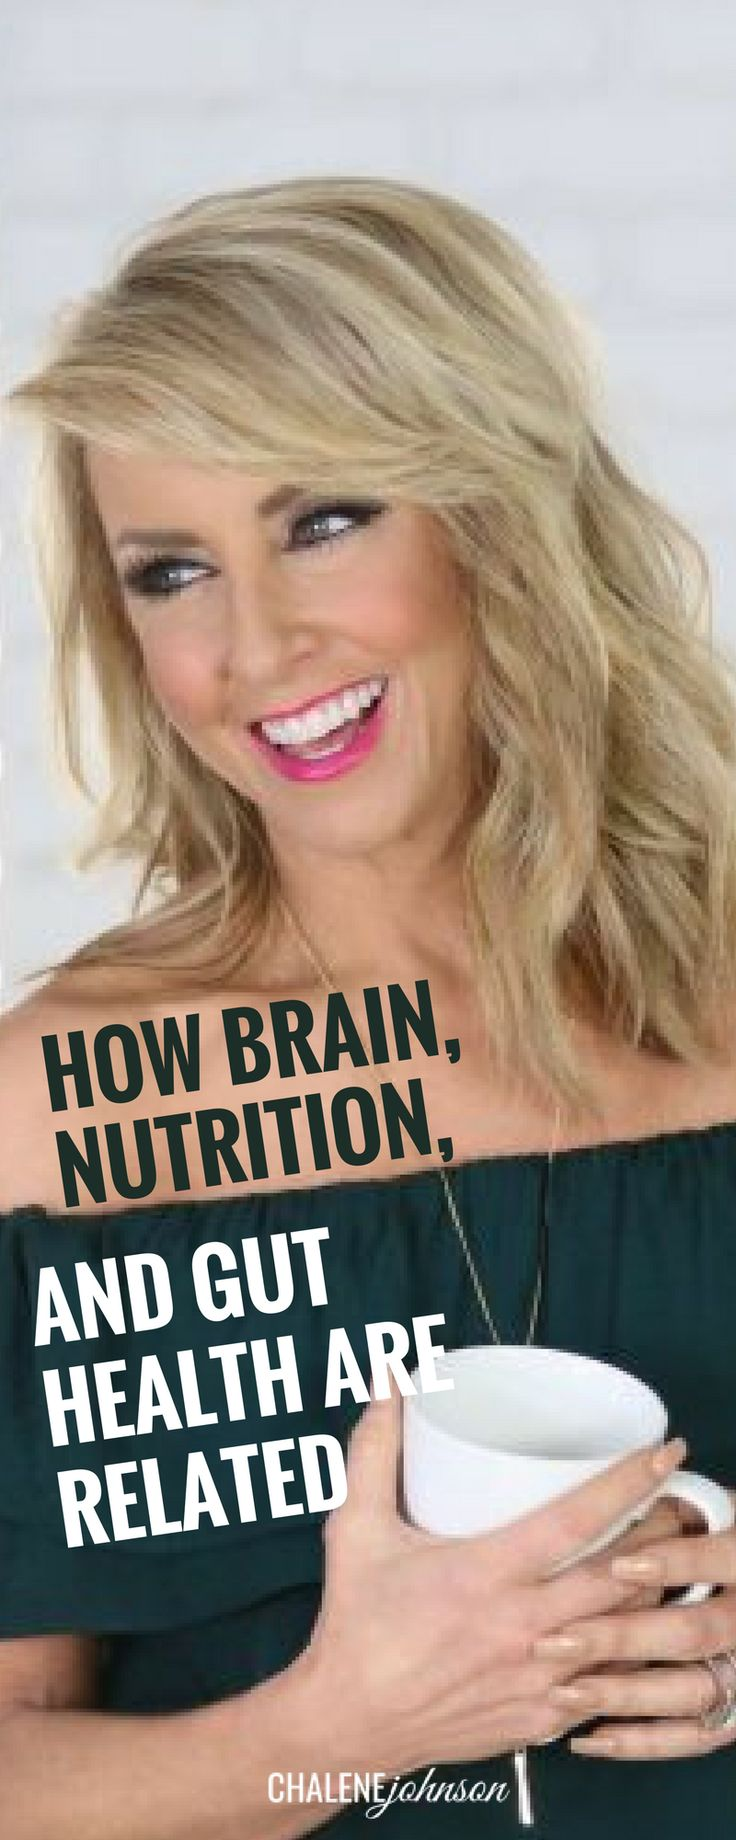 How brain, nutrition, and gut health are related. http://www.chalenejohnson.com/healthy-living/why-i-became-a-pseudo-scientist-how-brain-nutrition-and-gut-health-are-related/#_l_3v